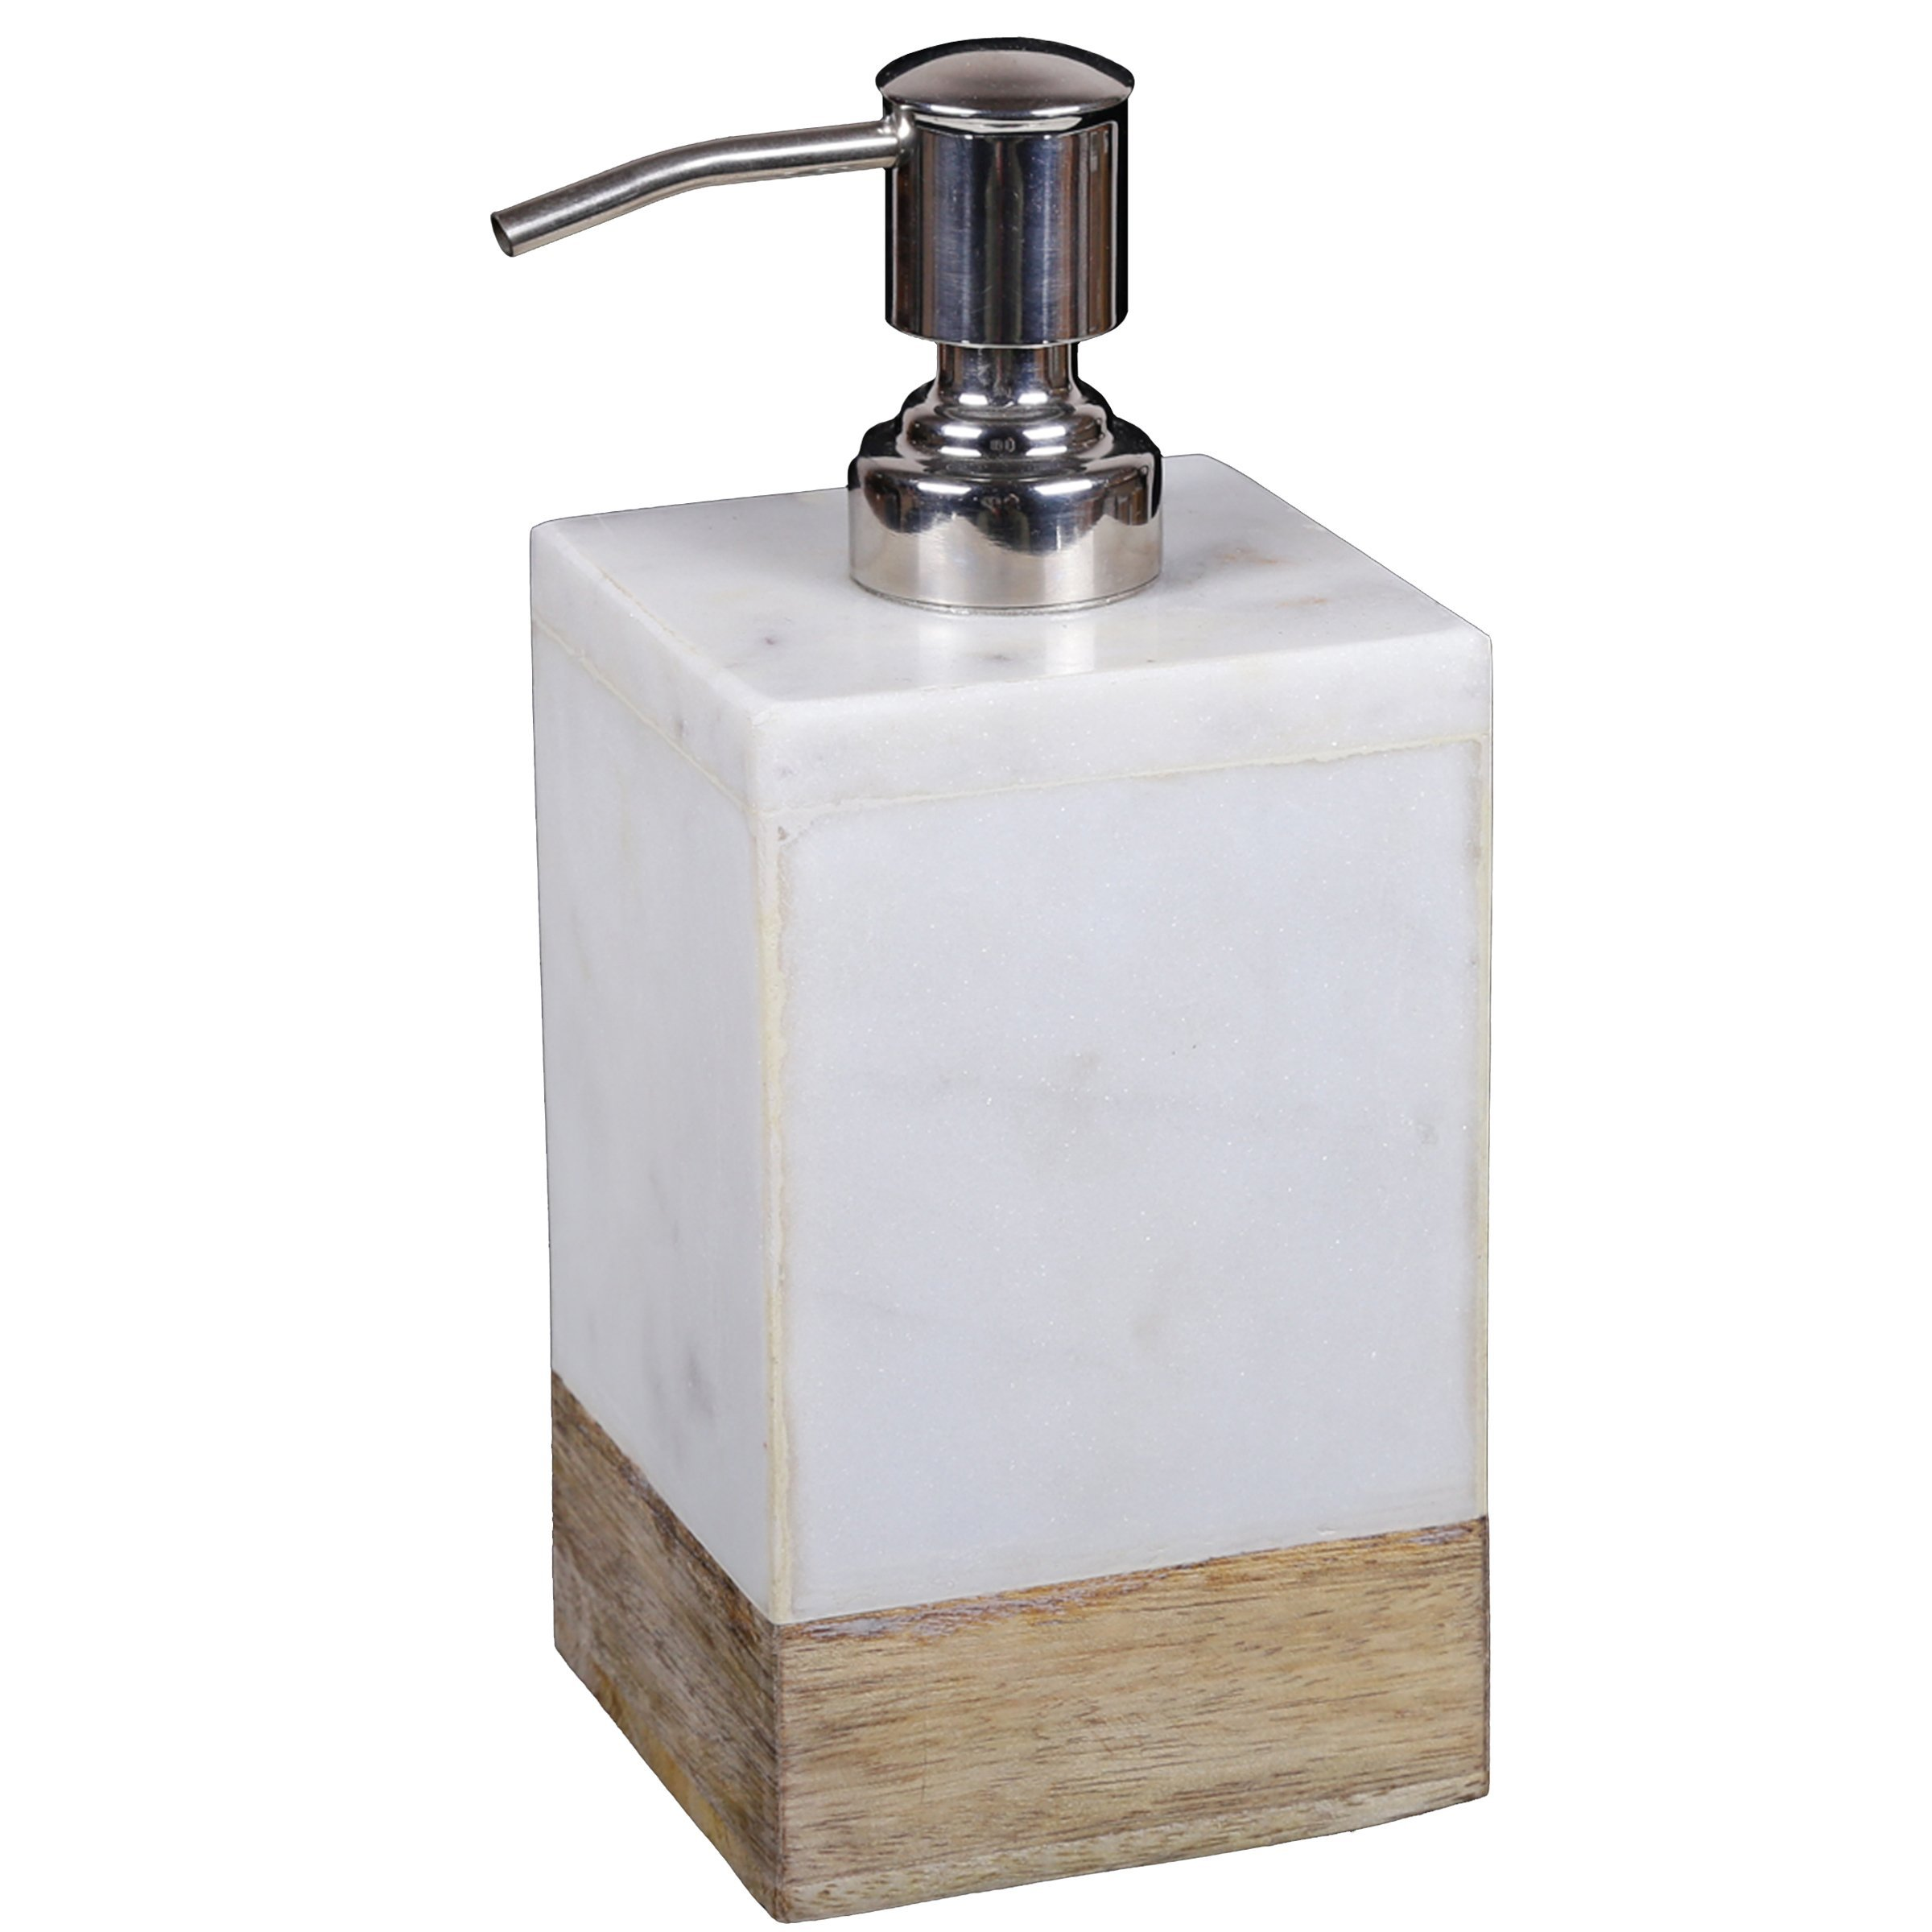 Creative Home 74821 Natural White Marble & Mango Wood Liquid Soap Dispenser with Stainless Steel Pump